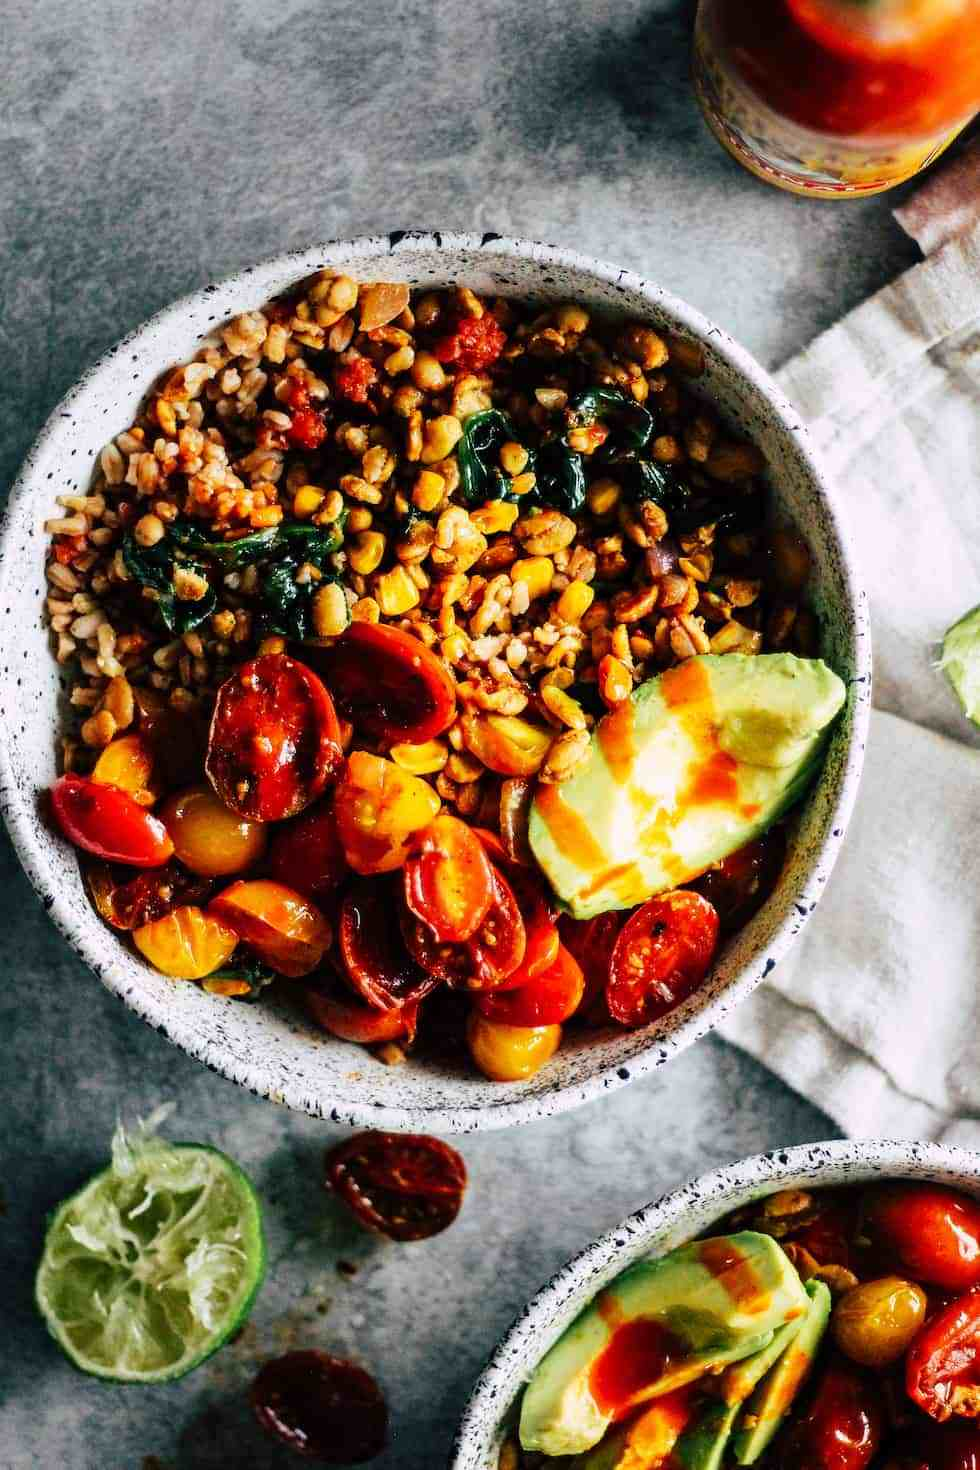 Burrito Bowls are vegetarian lunches to pack for school or work.